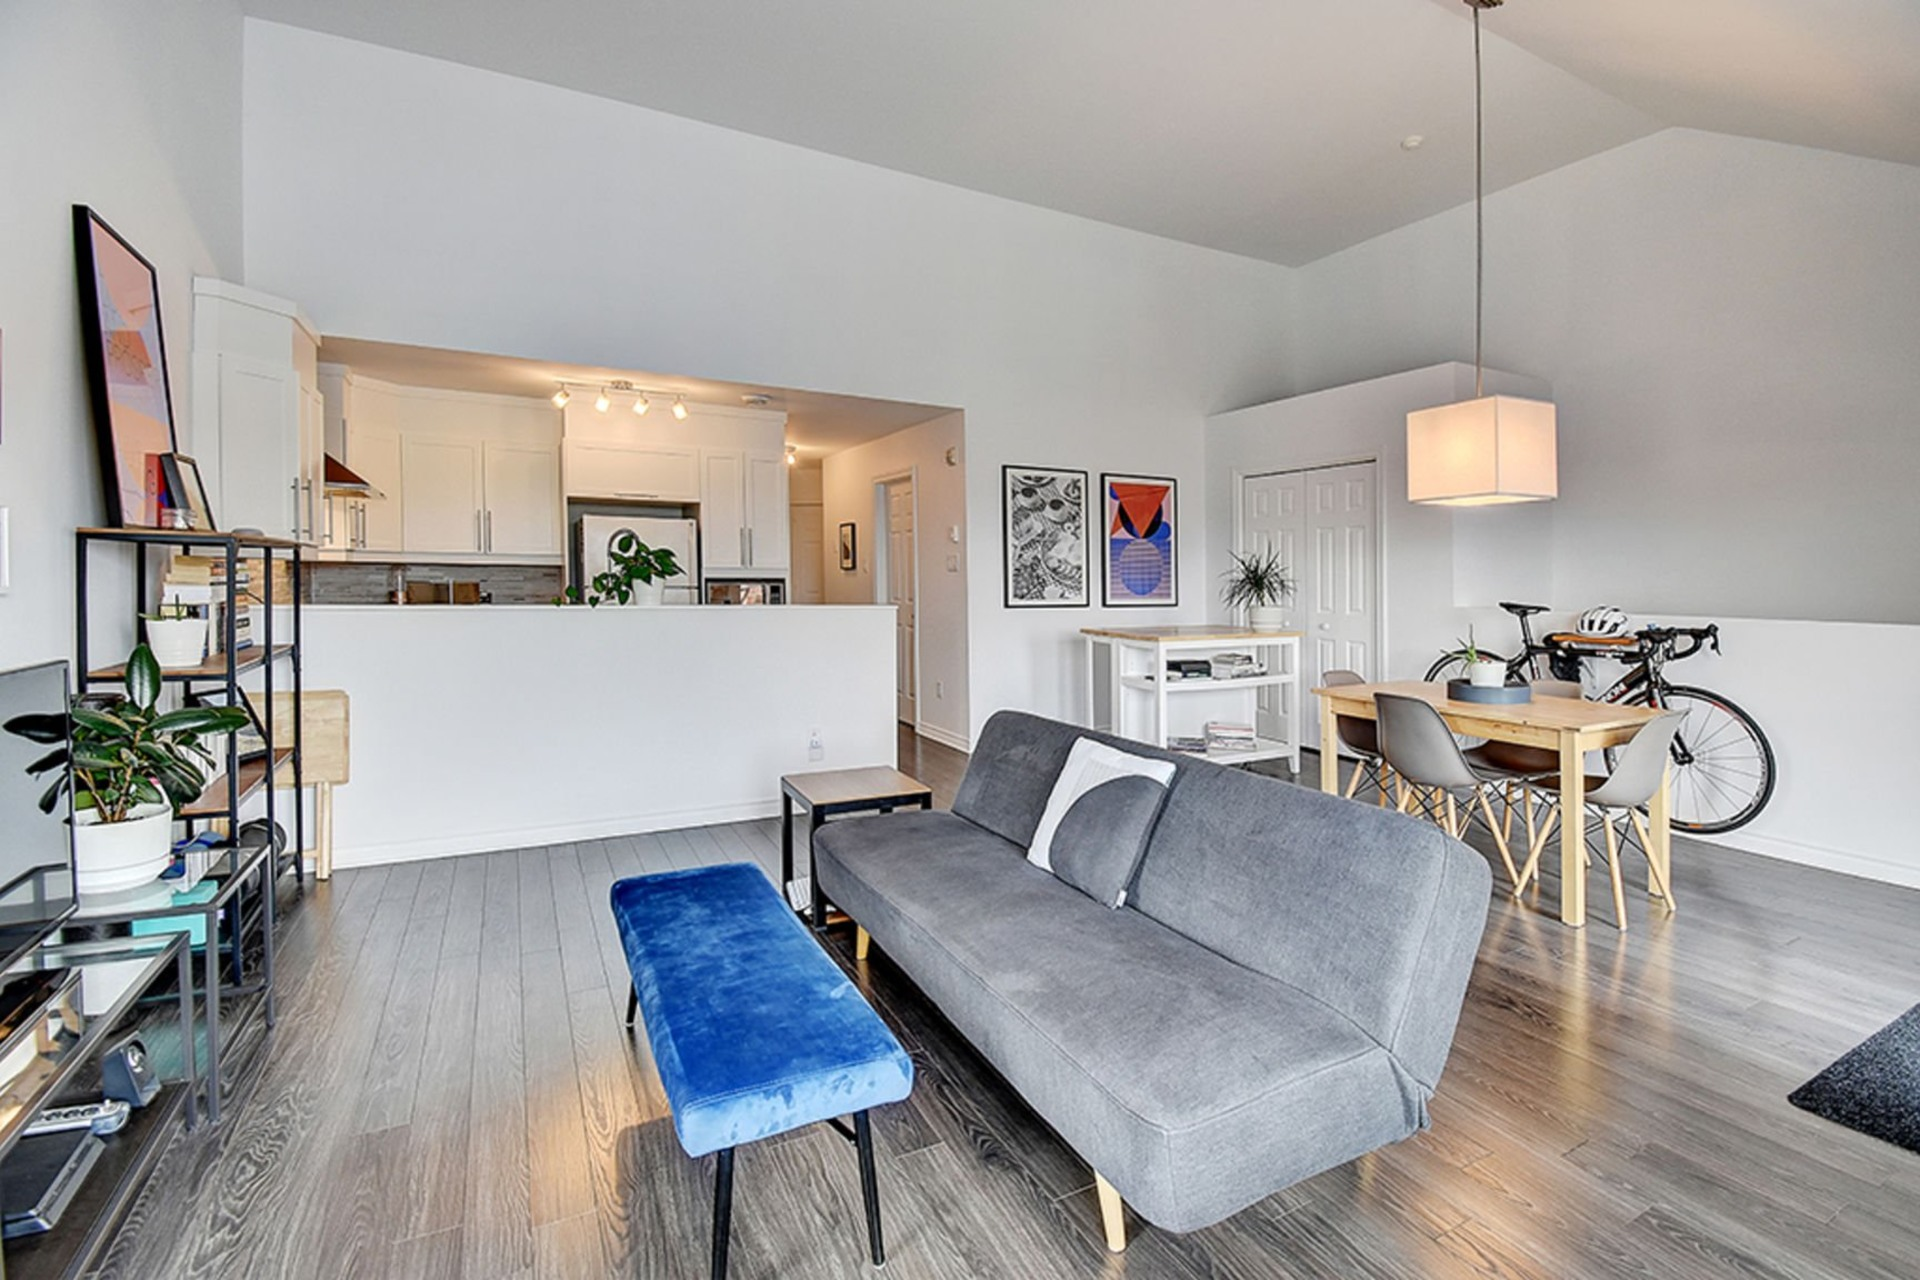 image 6 - Apartment For sale Brossard - 5 rooms